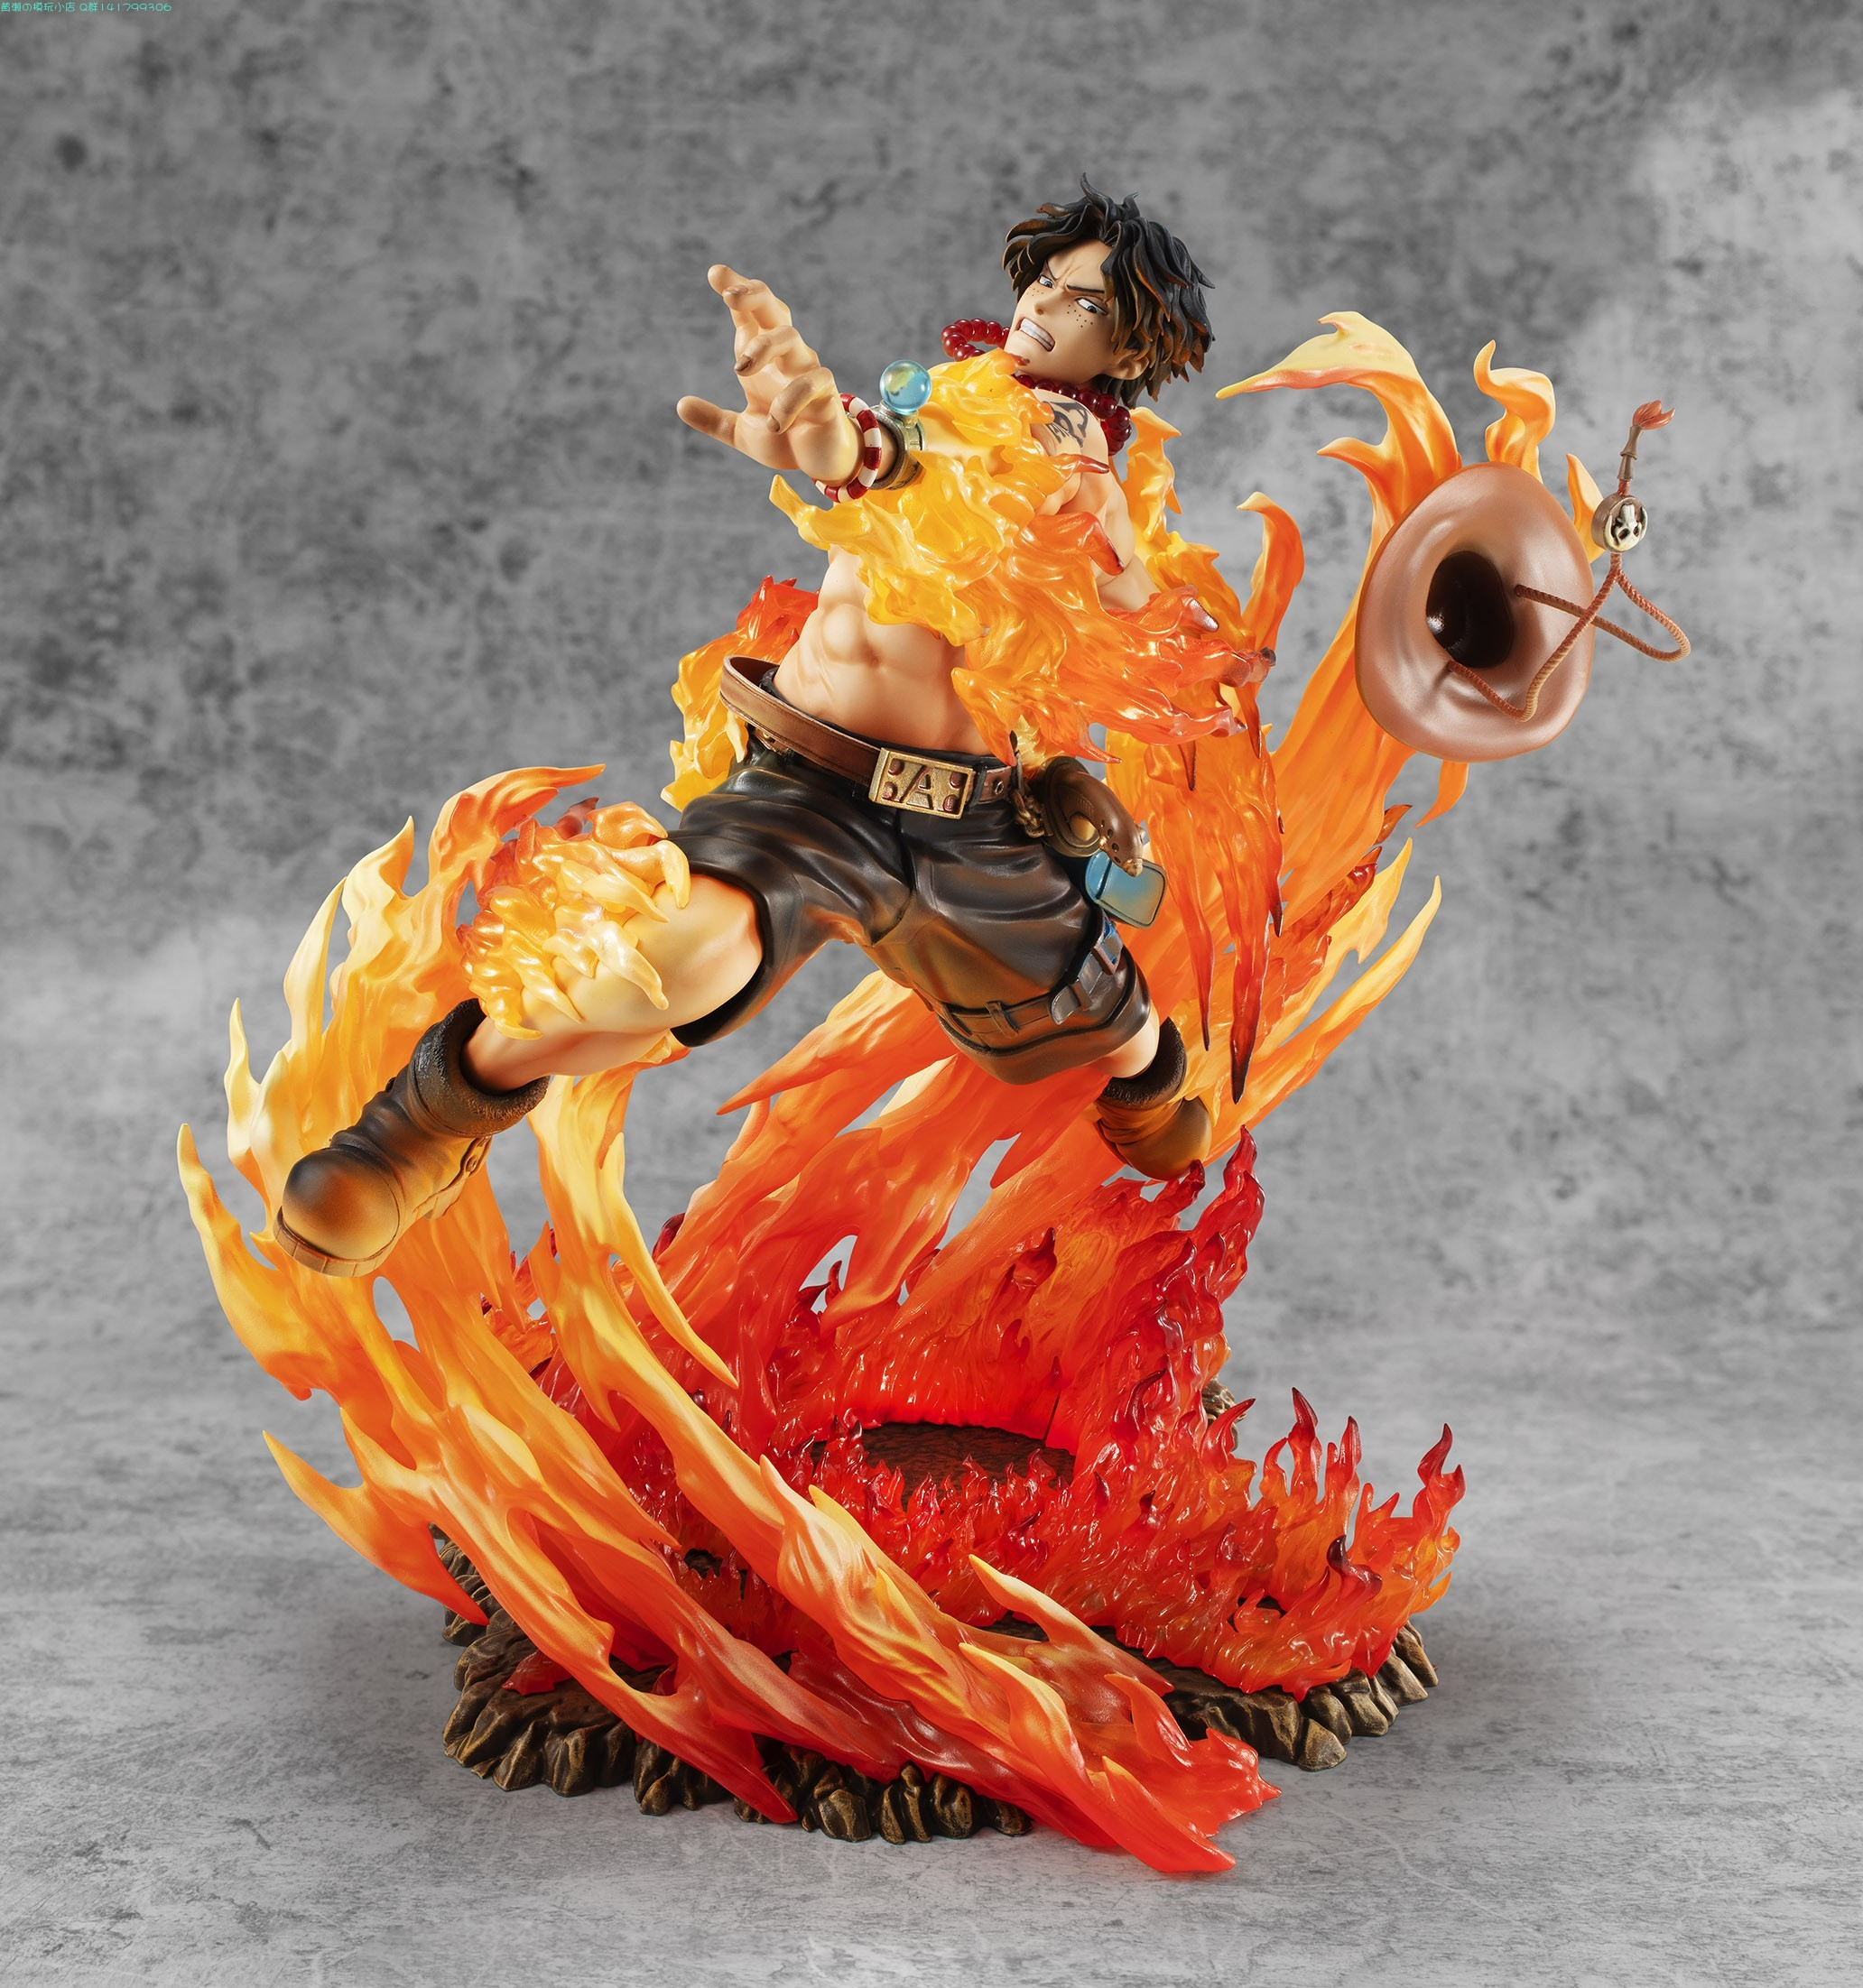 New 25cm One Piece Ace Fire Fist PVC Action Figure One Piece Anime Portgas·D· Ace 15th Anniversary Max Collection Figurine Toy